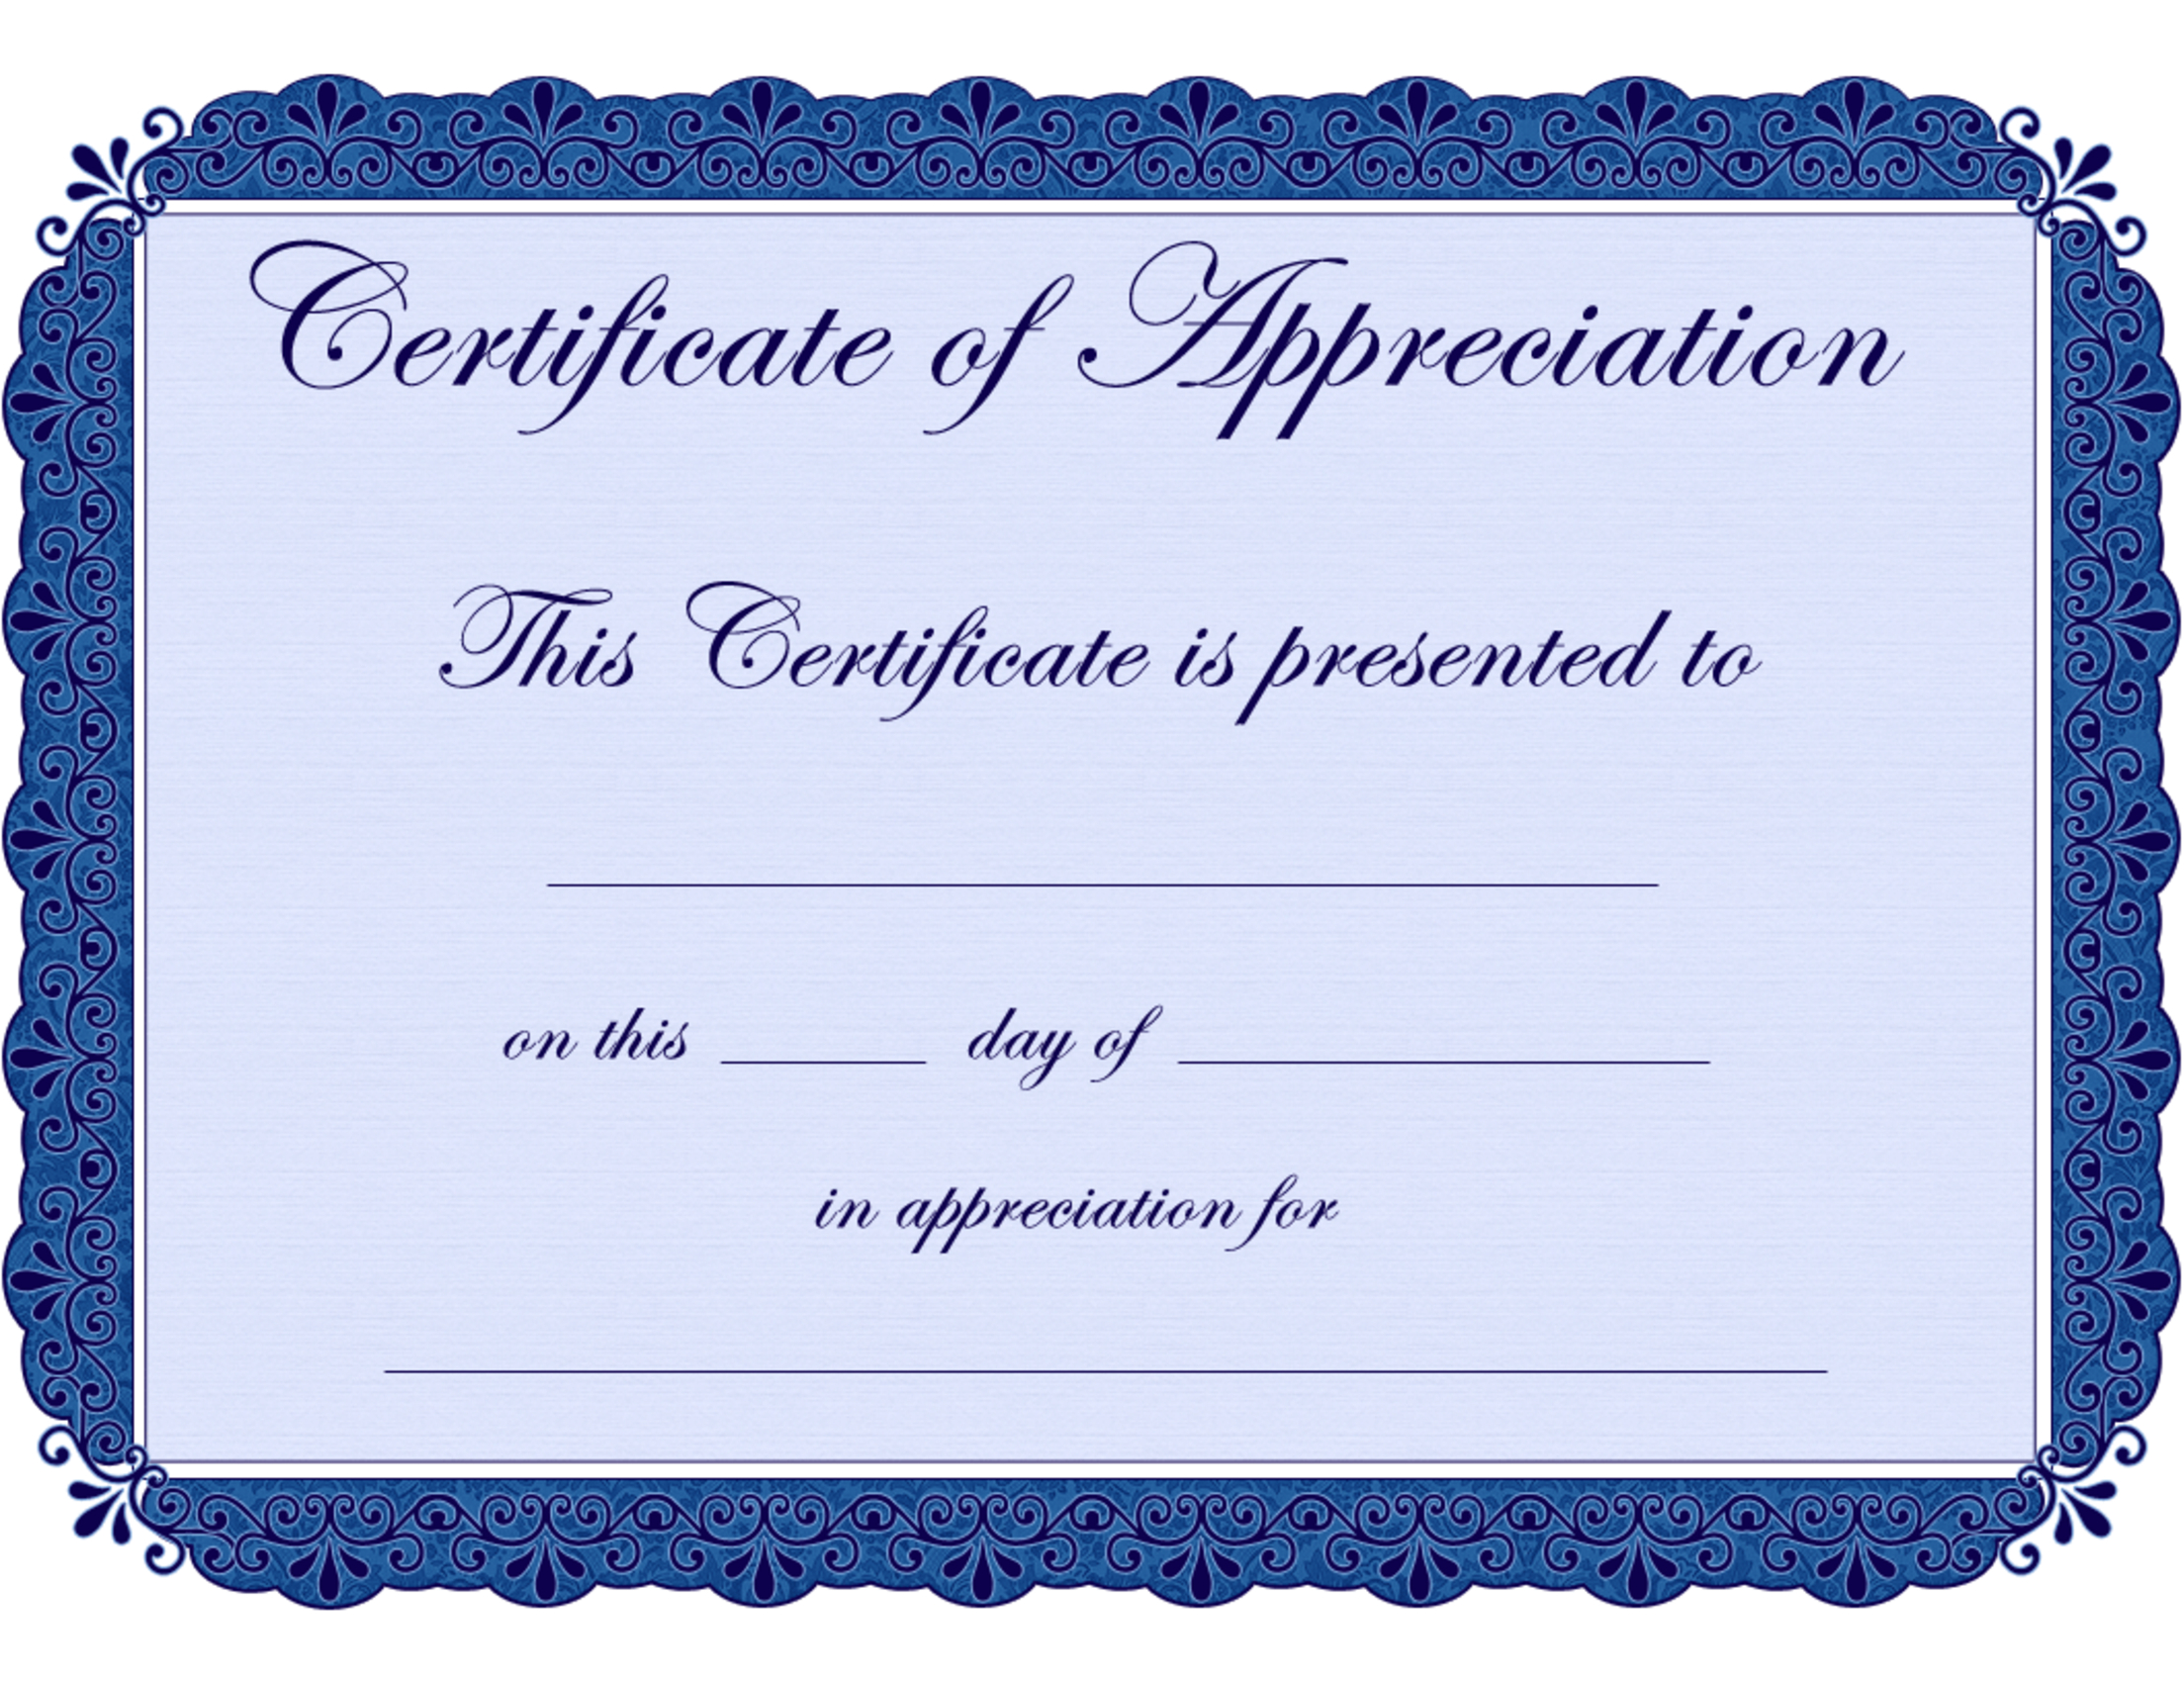 Free Printable Certificates Certificate Of Appreciation Regarding Printable Certificate Of Recognition Templates Free